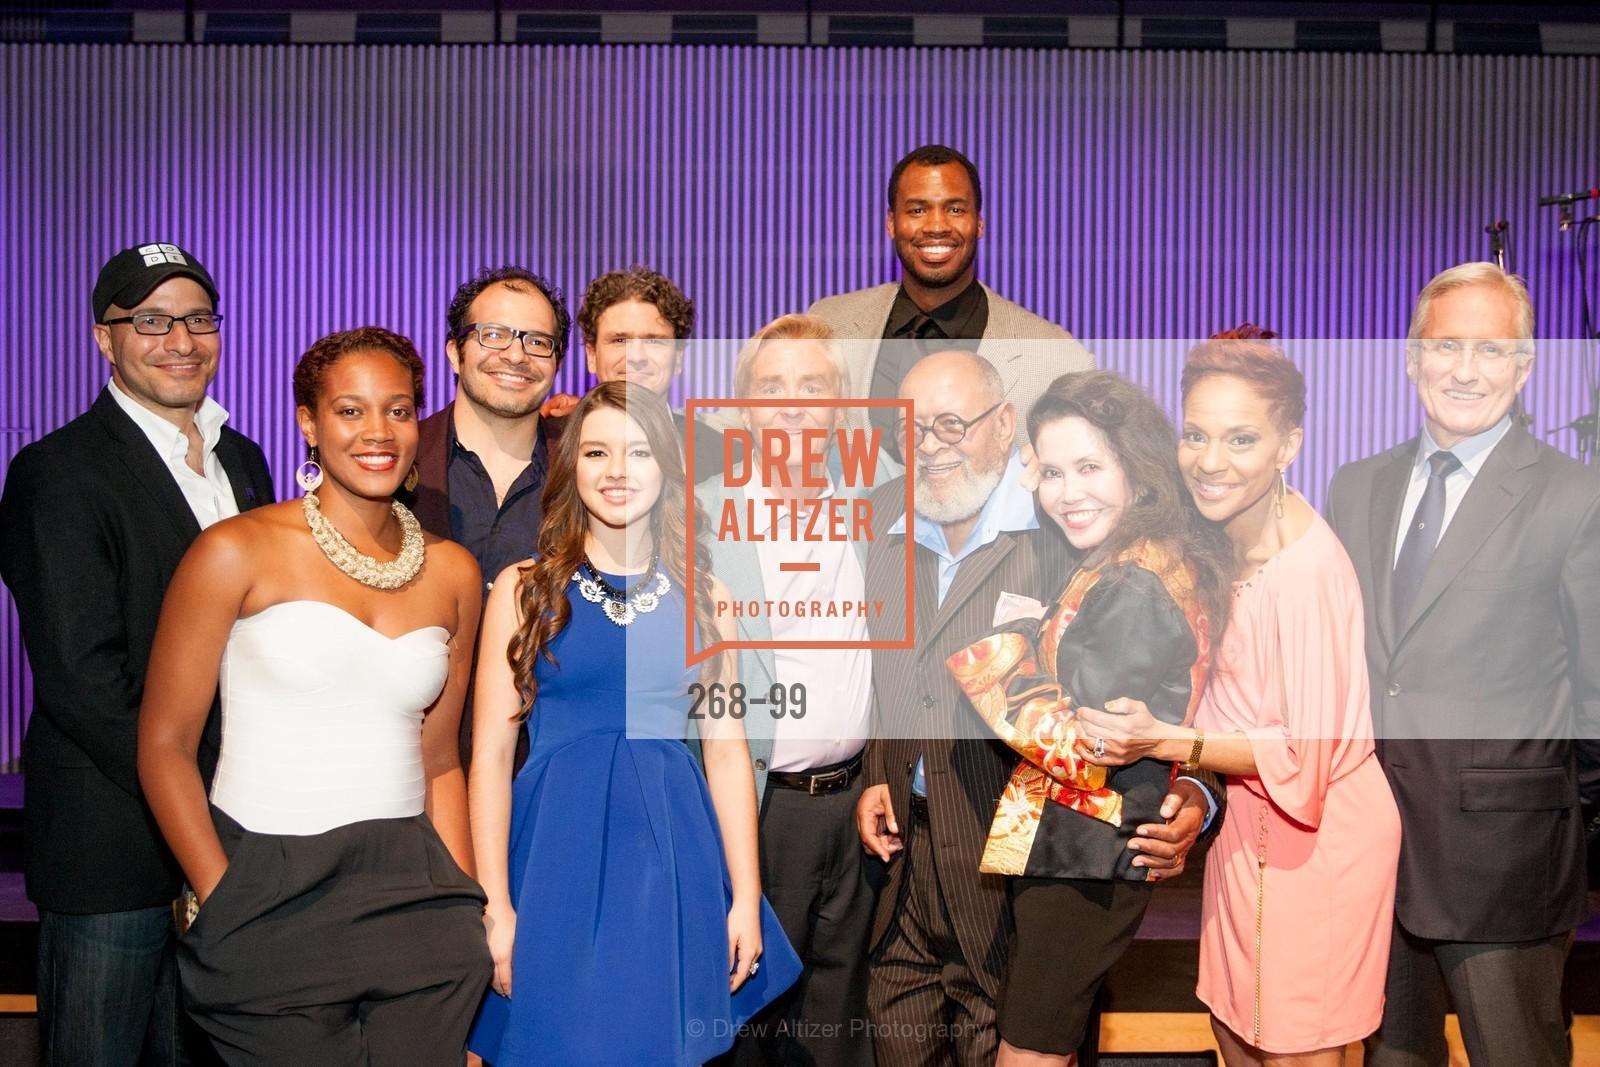 Hadi Partovi, Chinaka Hodge, Ali Partovi, Fátima Ptacek, Dave Eggers, Jim Steyer, Jason Collins, Reverend Cecil Williams, Janice Mirikitani, Renel Brooks-Moon, James Coulter, Common Sense Media Awards 2015, SF Jazz. 201 Franklin St, May 13th, 2015,Drew Altizer, Drew Altizer Photography, full-service agency, private events, San Francisco photographer, photographer california